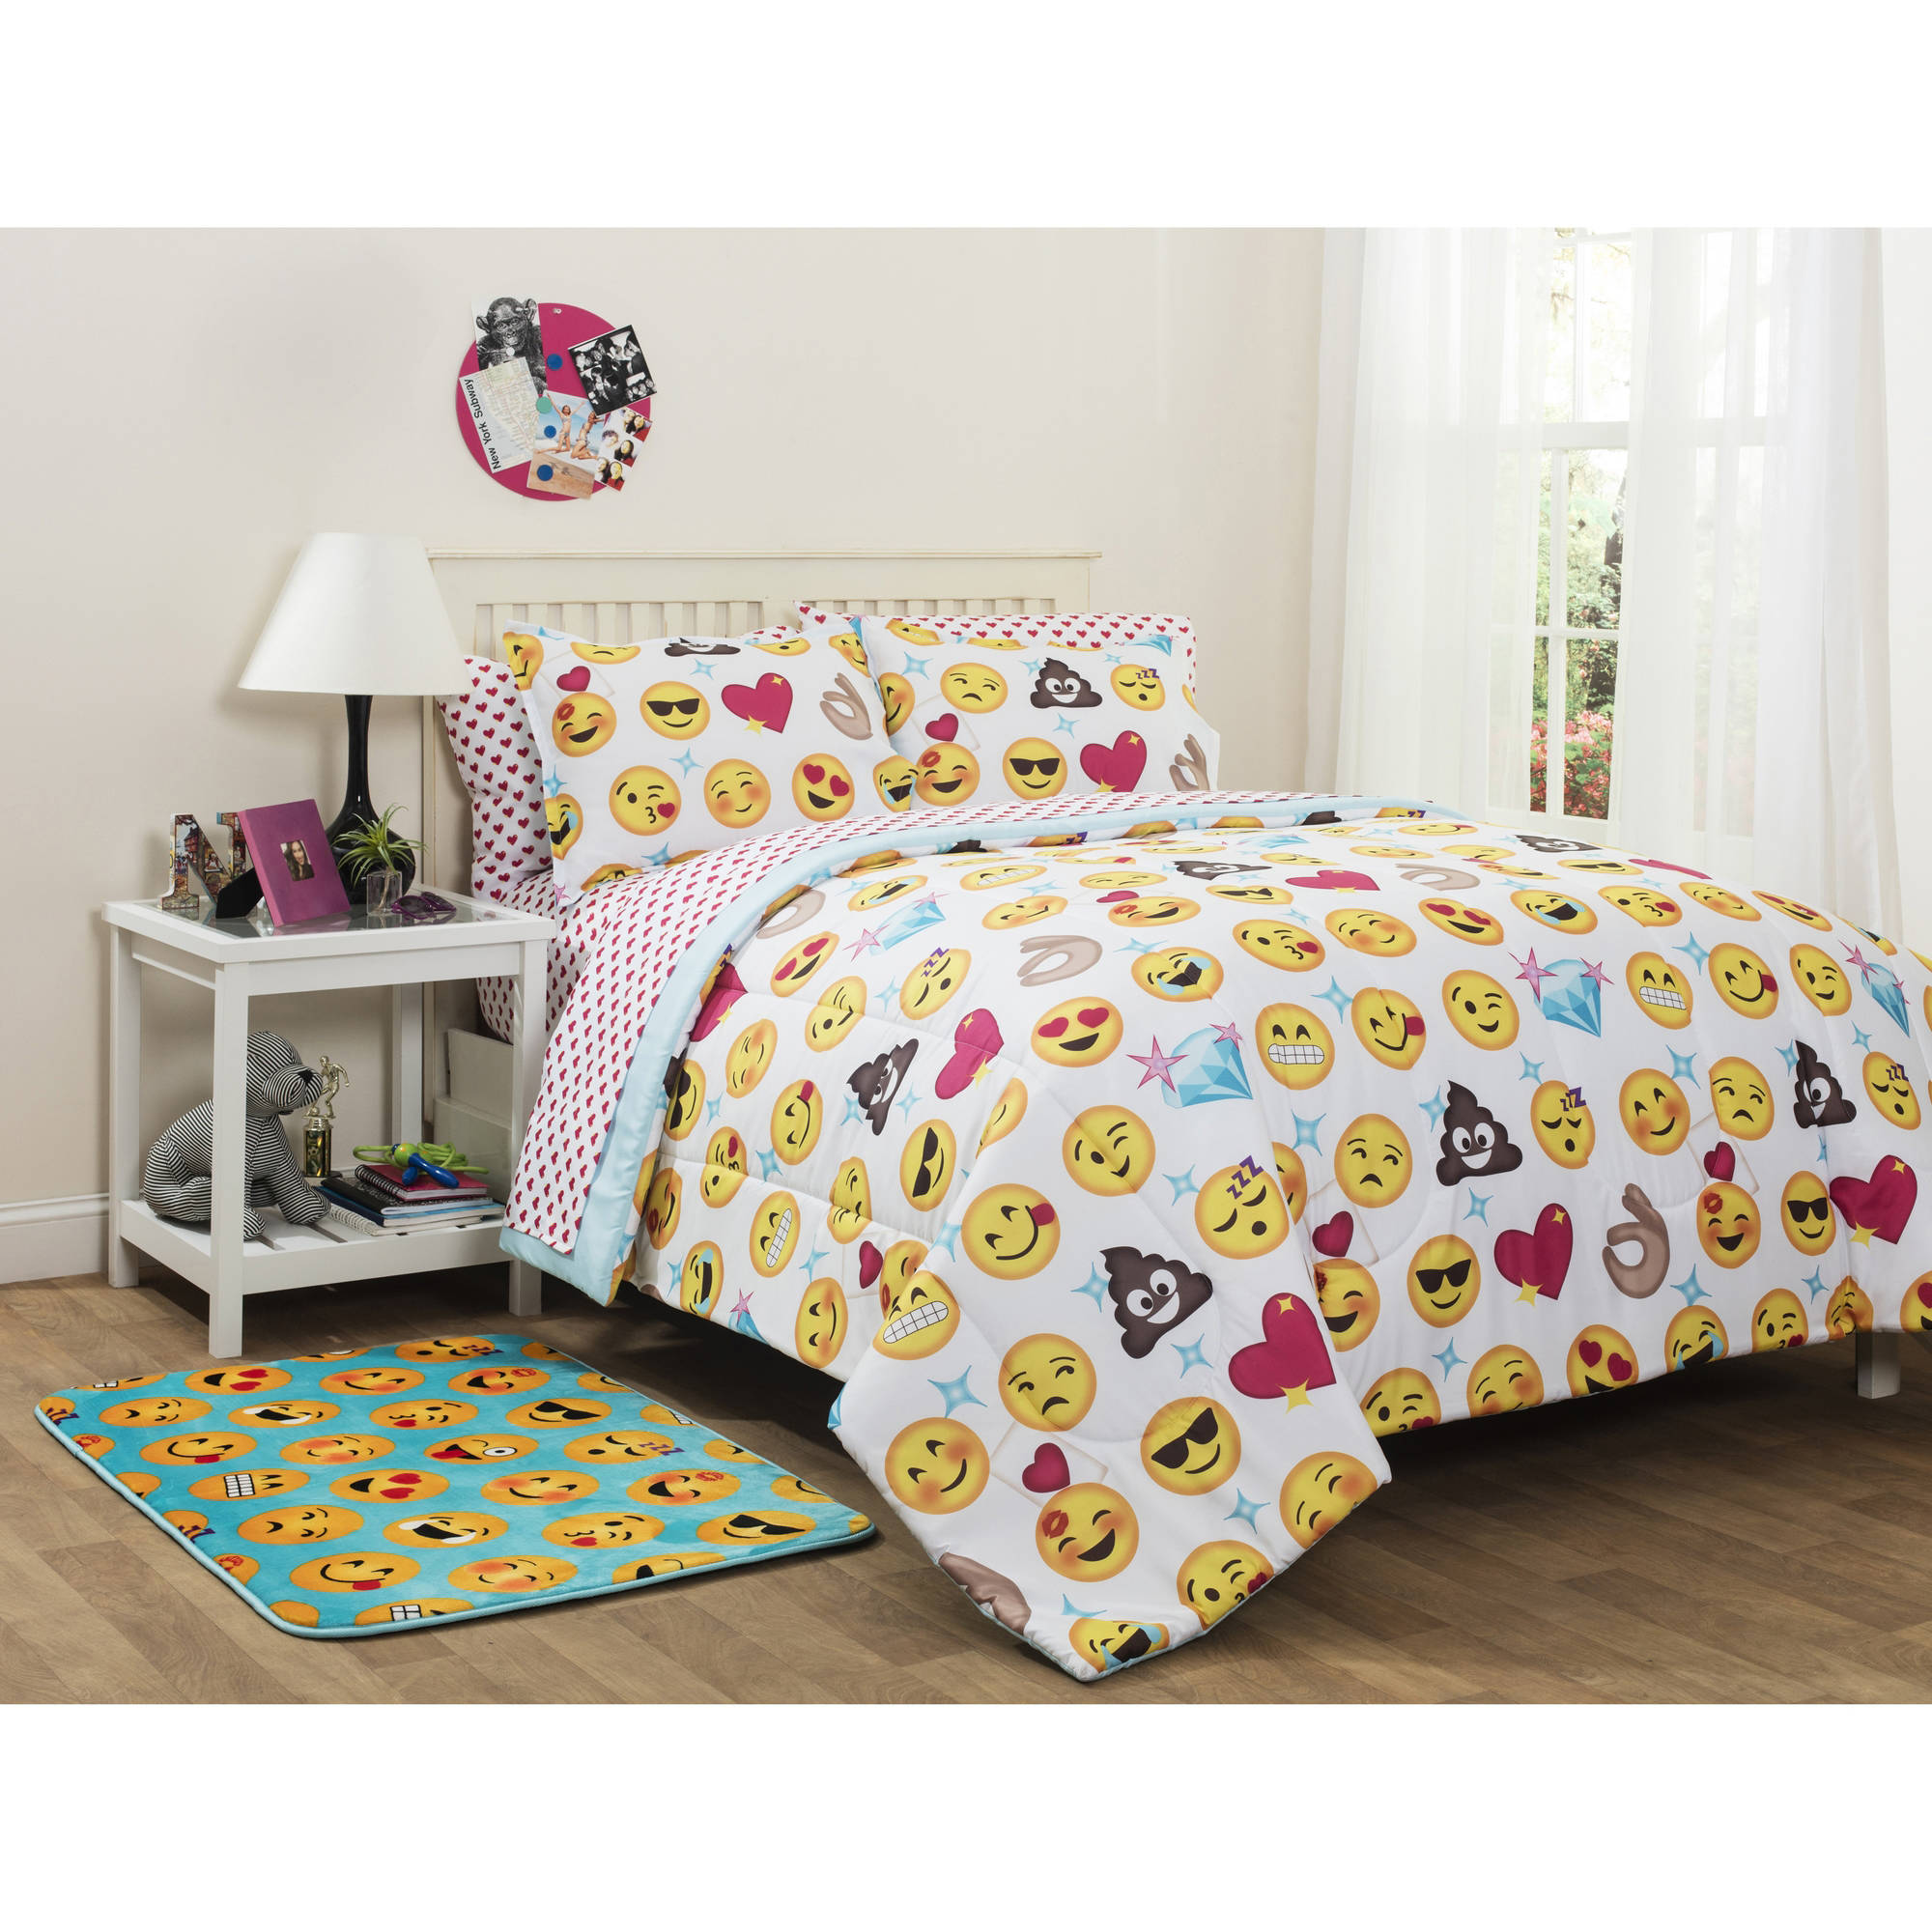 Emojipals Bed In A Bag Bedding Set Online Only Walmart Com